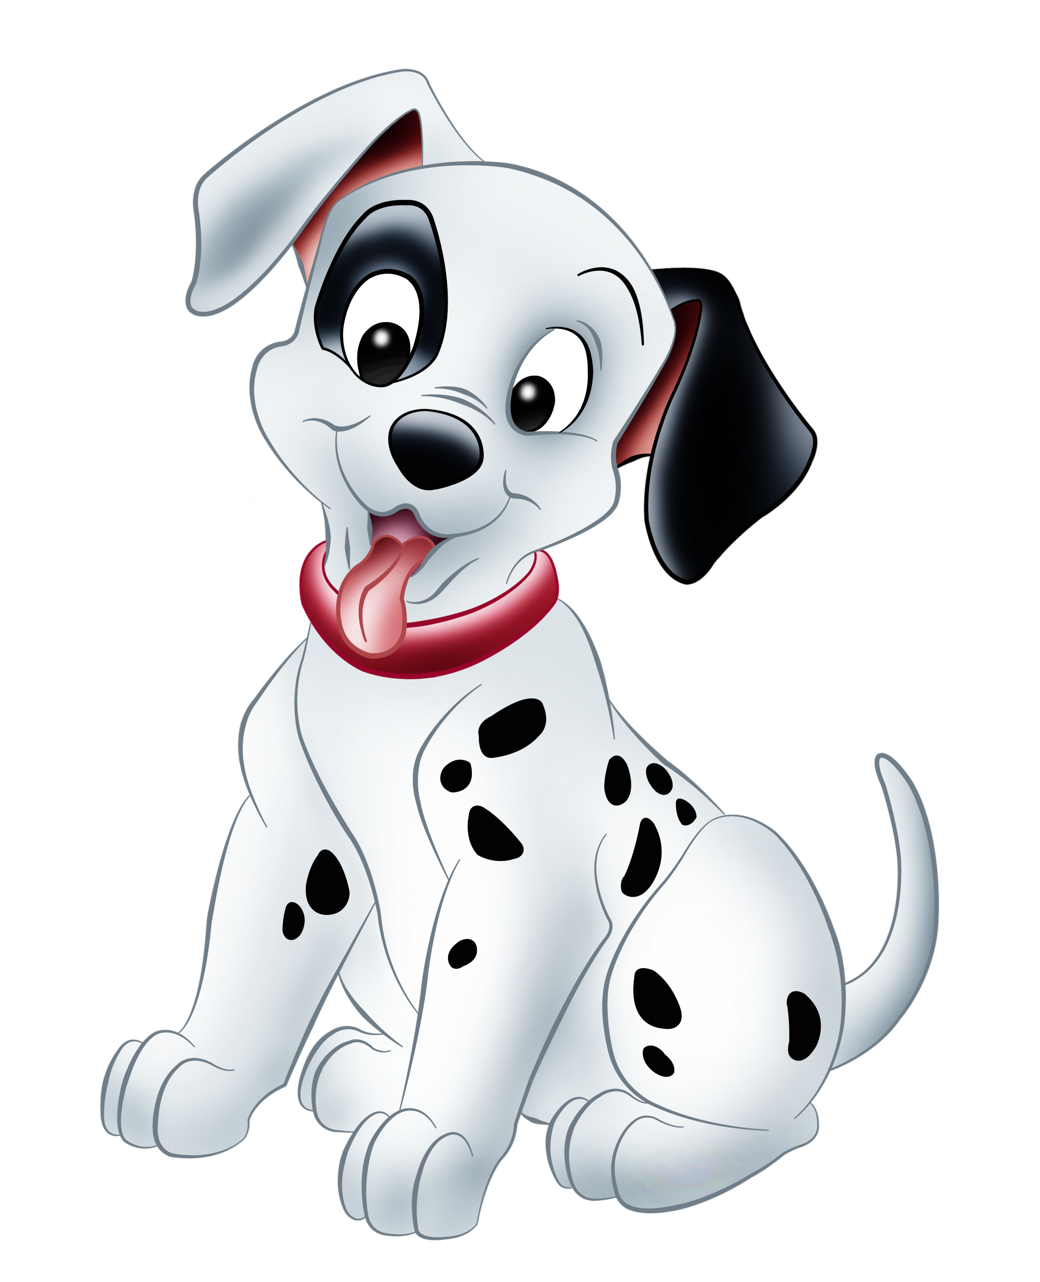 Dog skull clipart clip freeuse stock Puppy 101 Dalmatians PNG Clipart Picture | cartoon and game ... clip freeuse stock